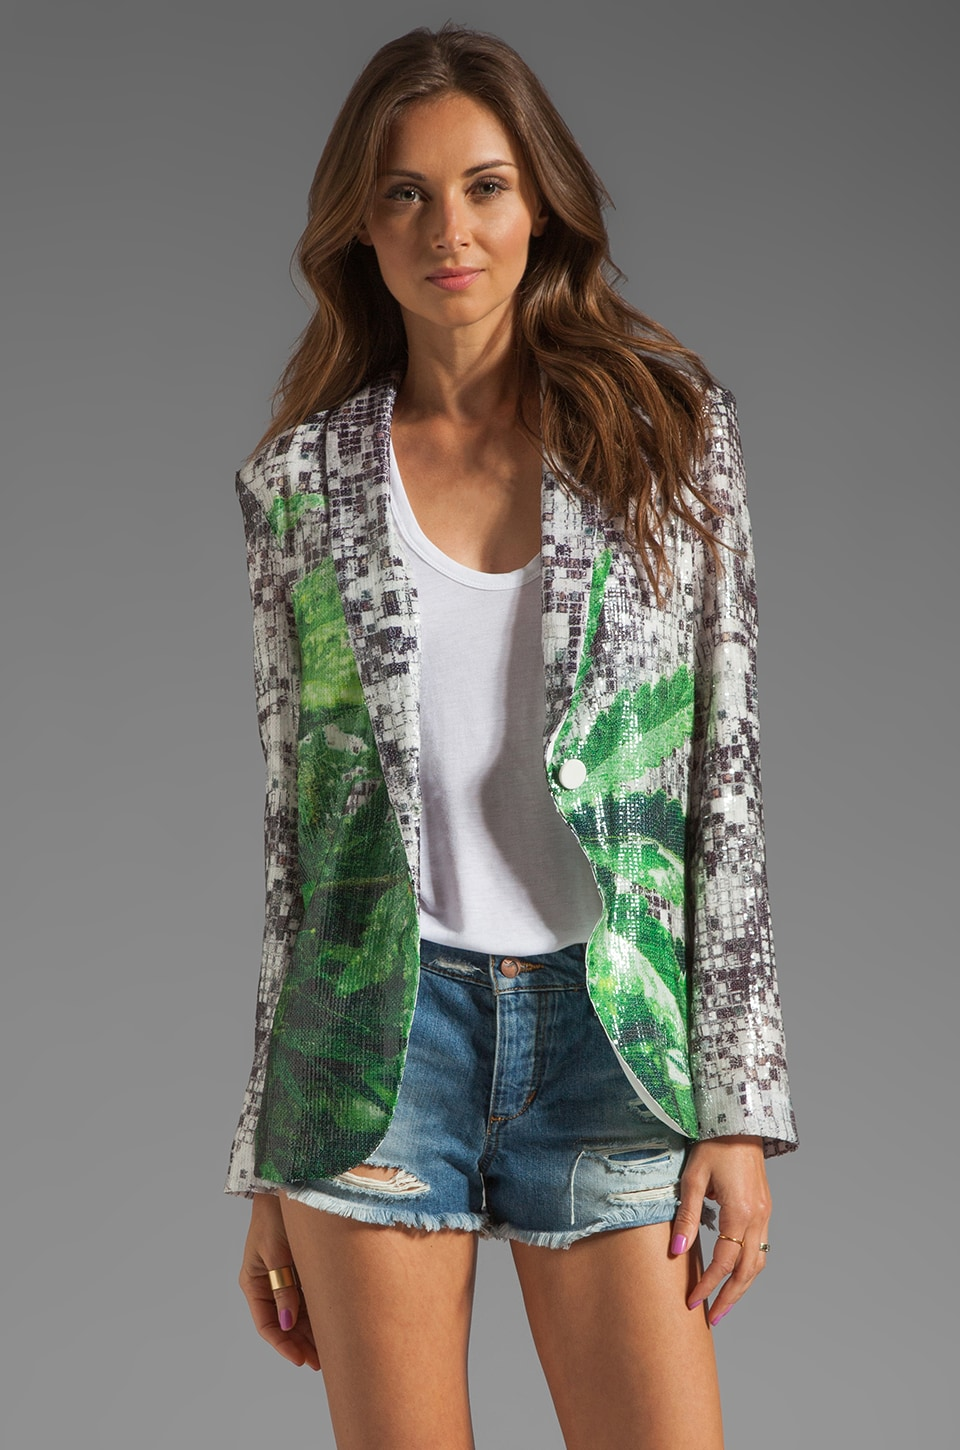 Clover Canyon How High Sequins Blazer in Multi